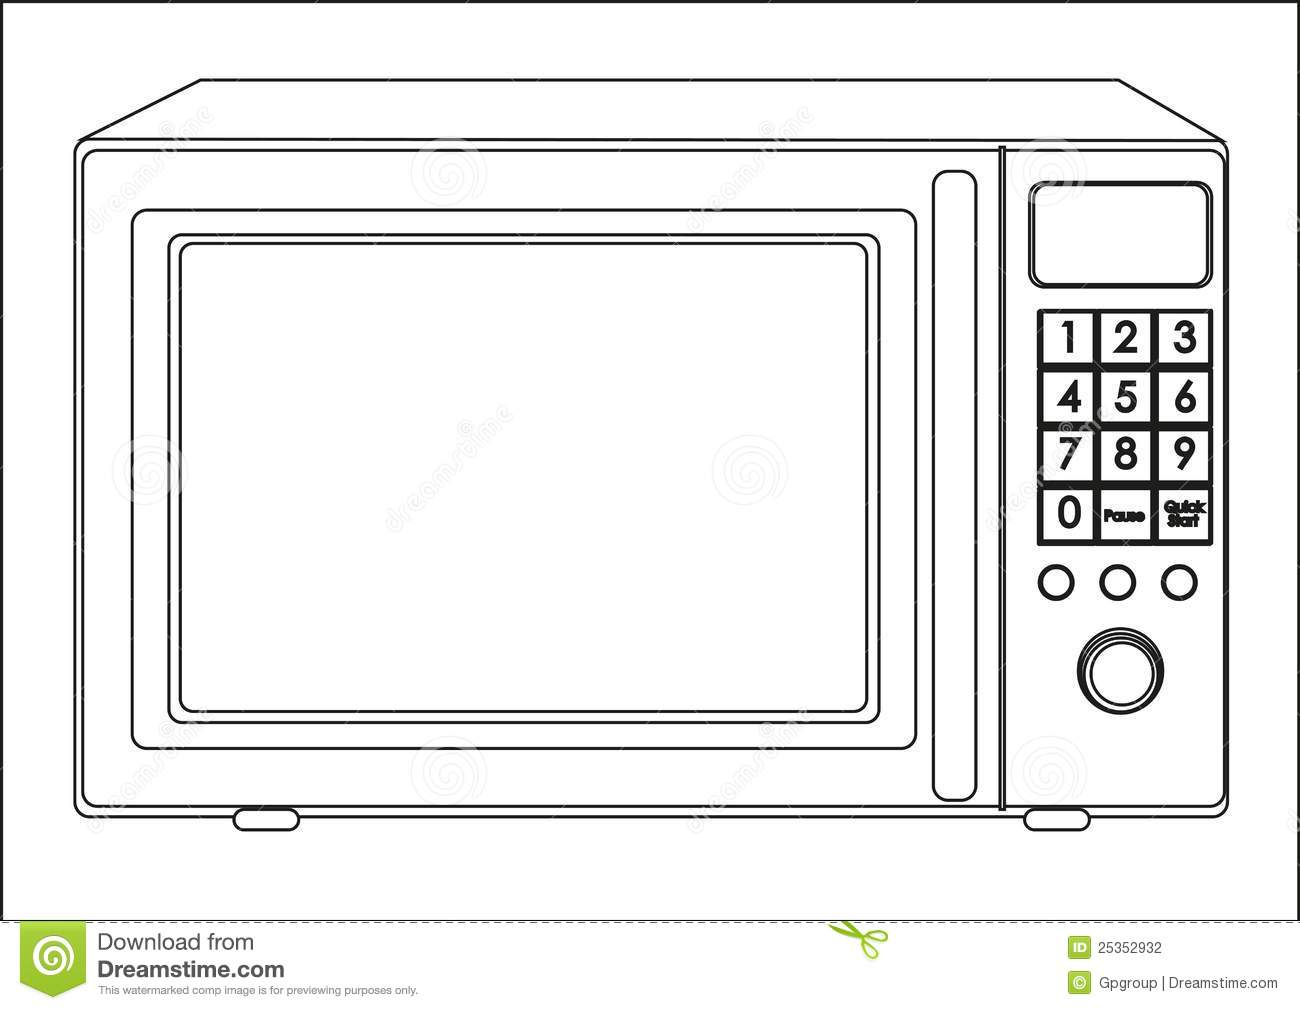 Microwave Oven Clip Art ~ Microwave clipart suggest